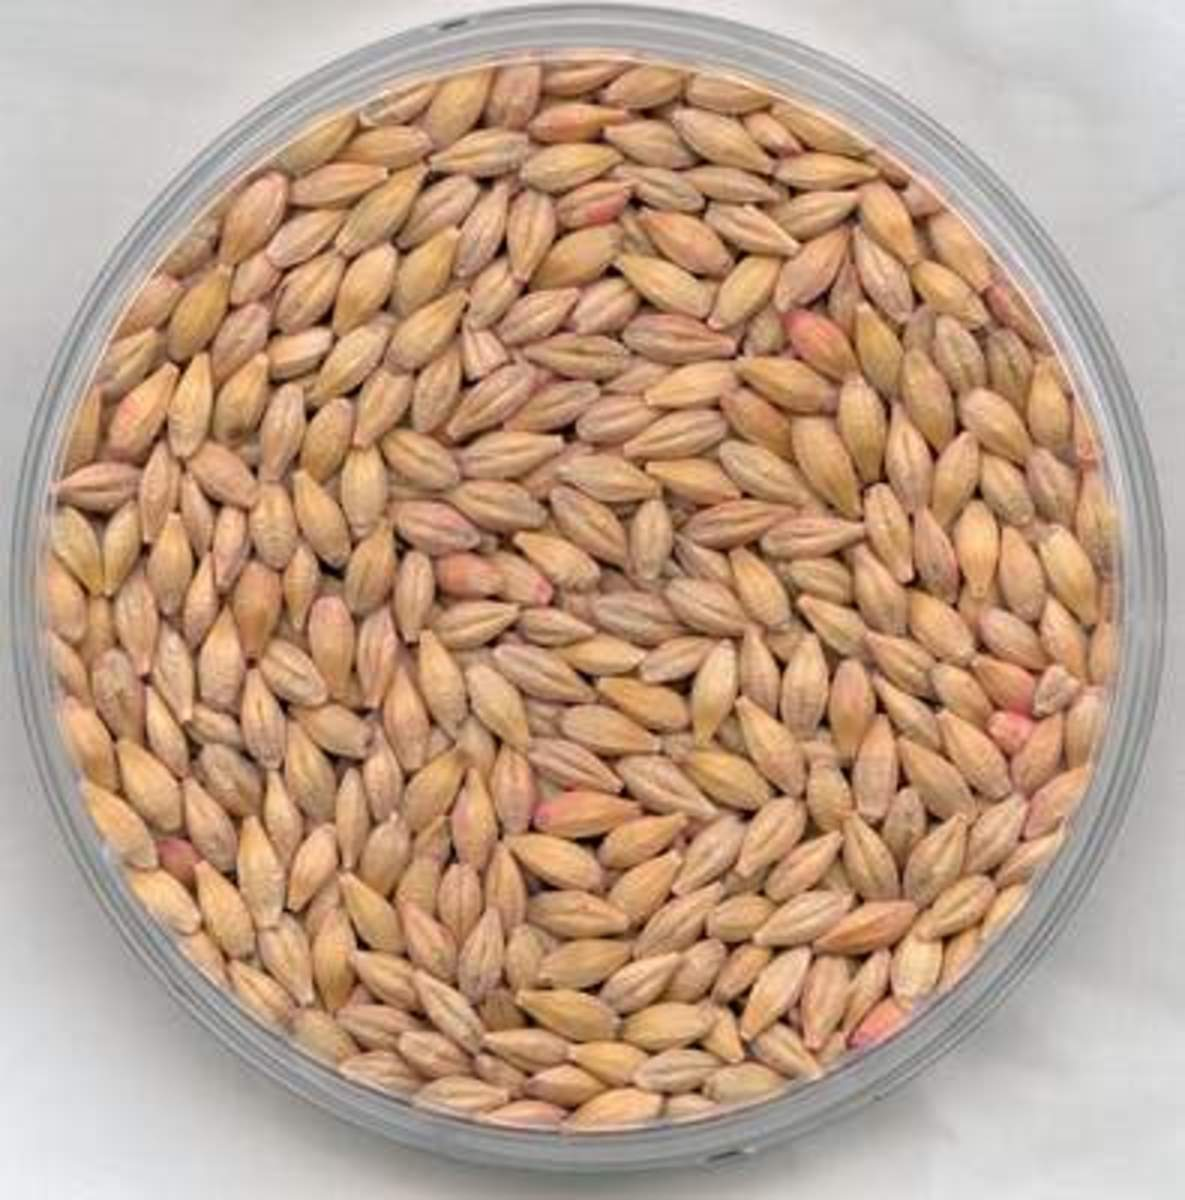 This article will provide some tips on how to improve your cooking of barley.